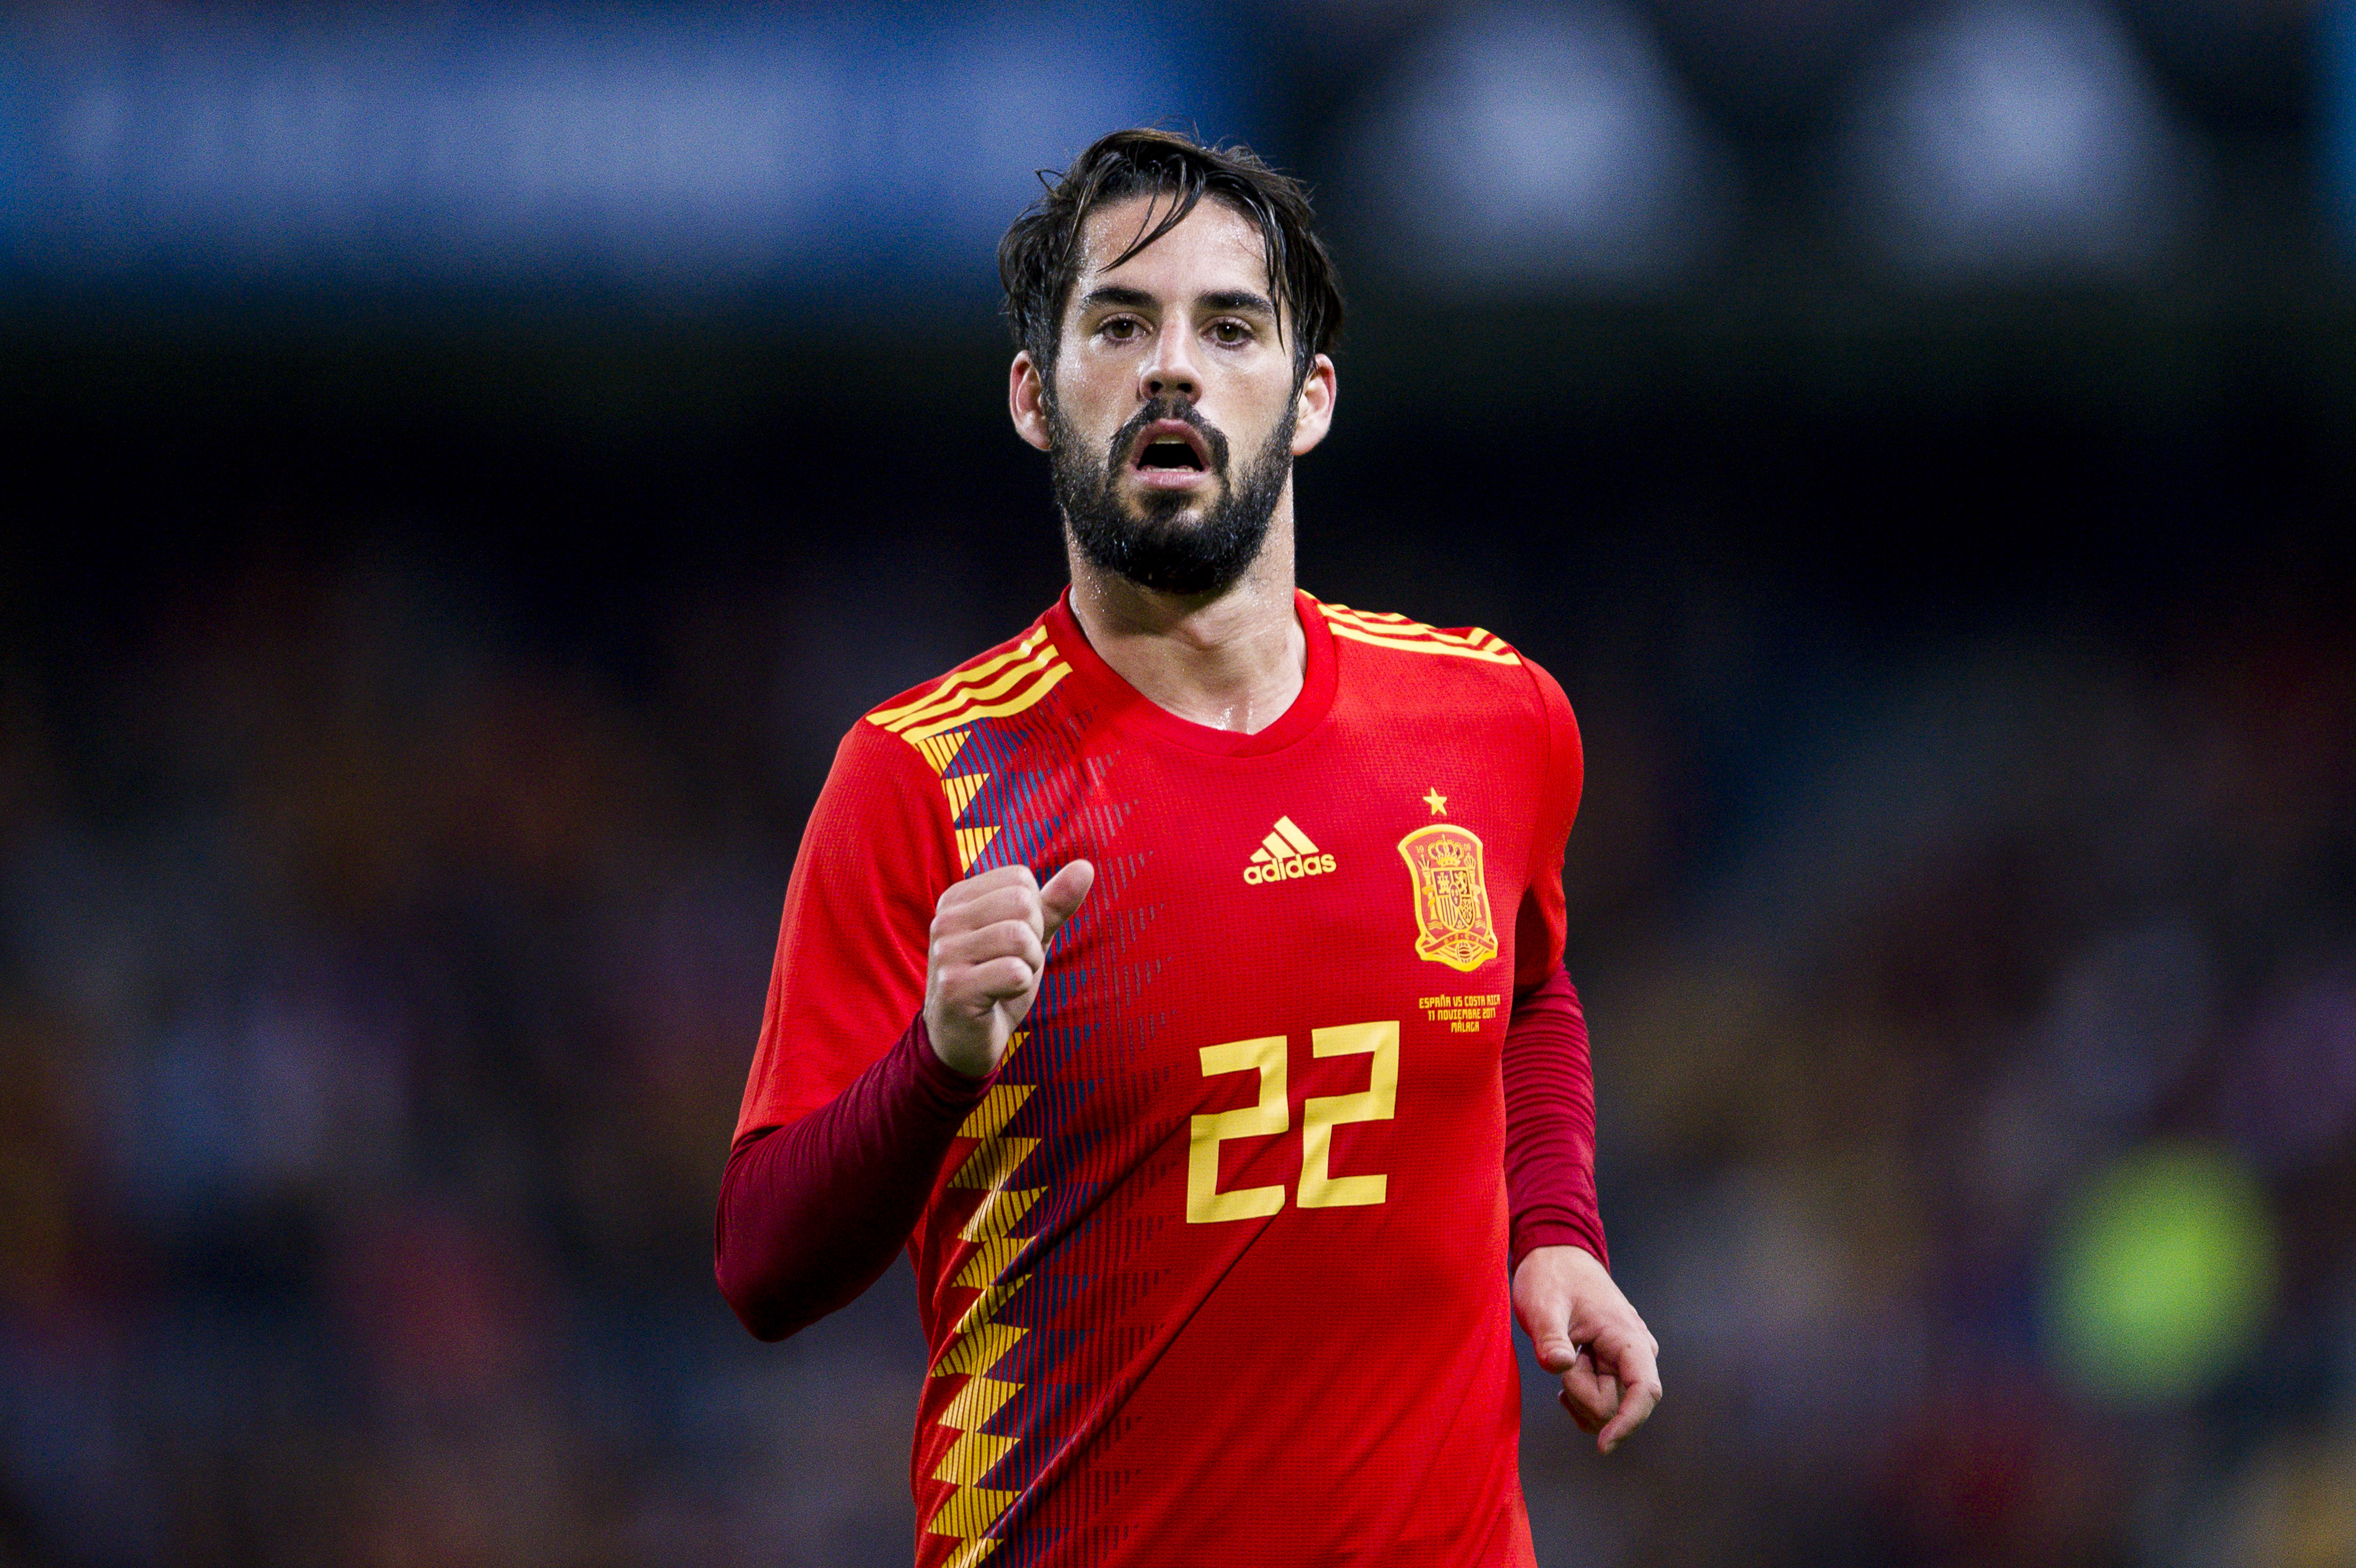 INJURY NEWS Real Madrid s Isco exits Spain match with injury